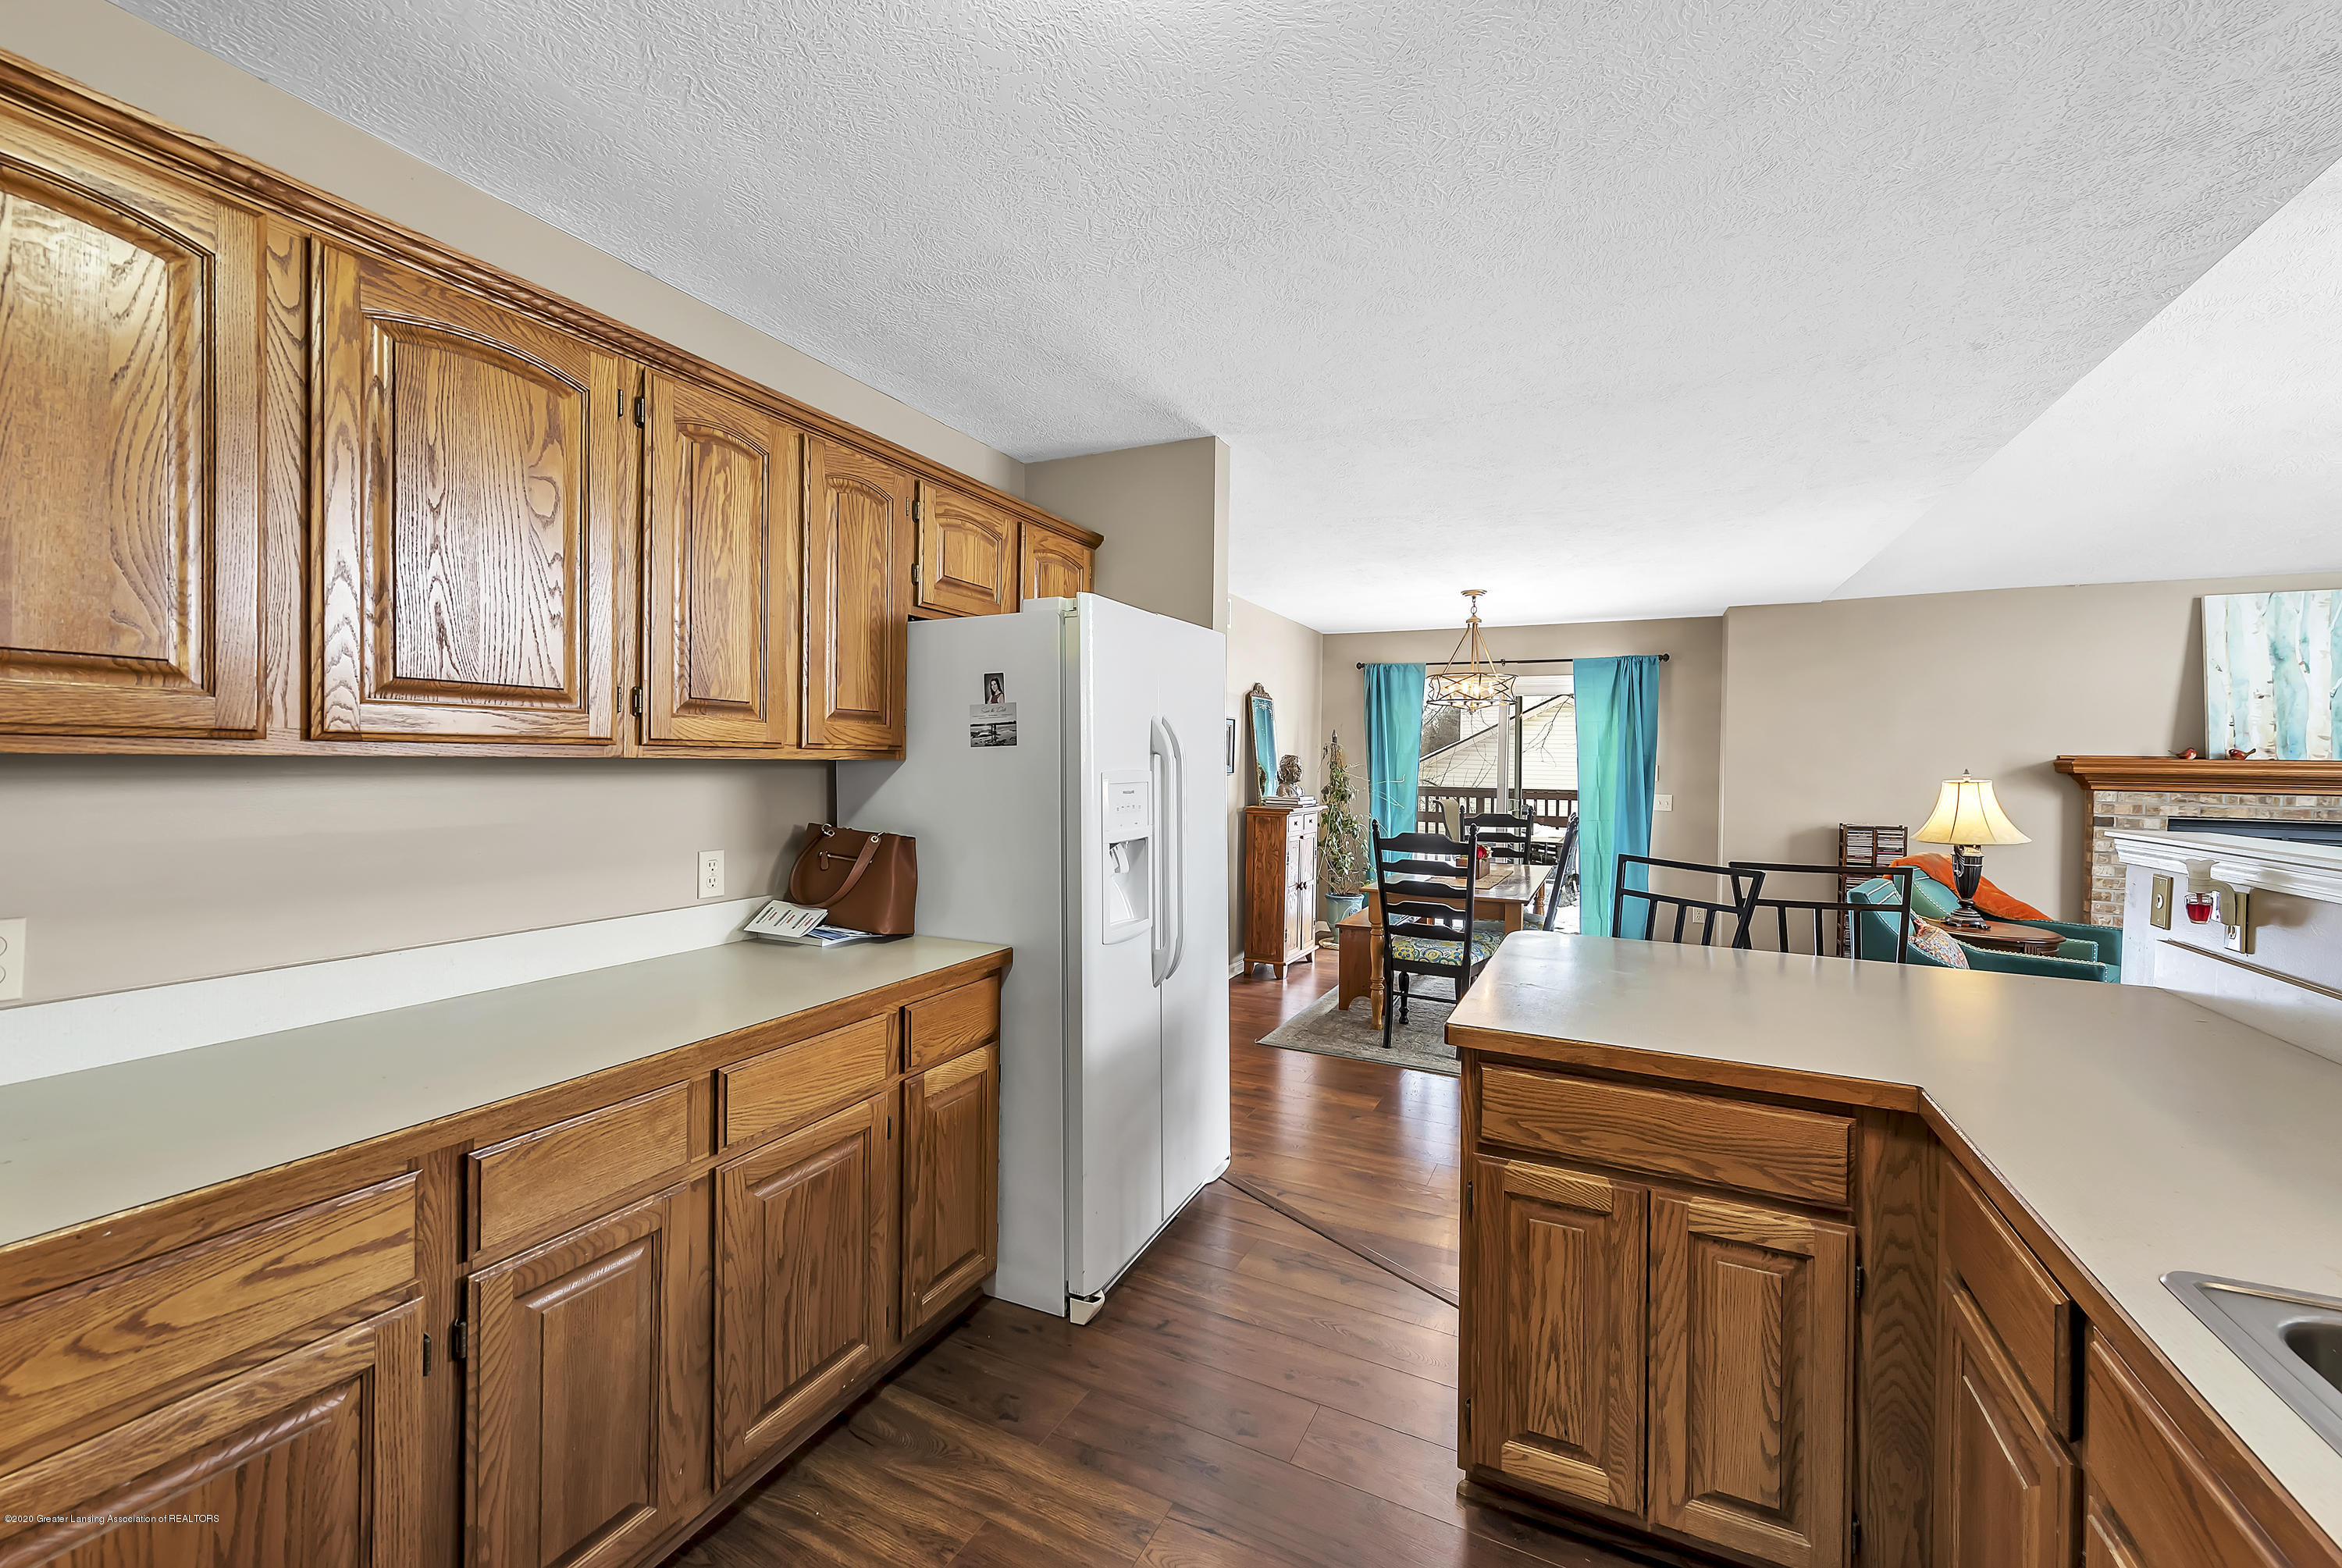 2450 Featherstone Dr - 2450-Featherstone-Dr-WindowStill-Real-Es - 13